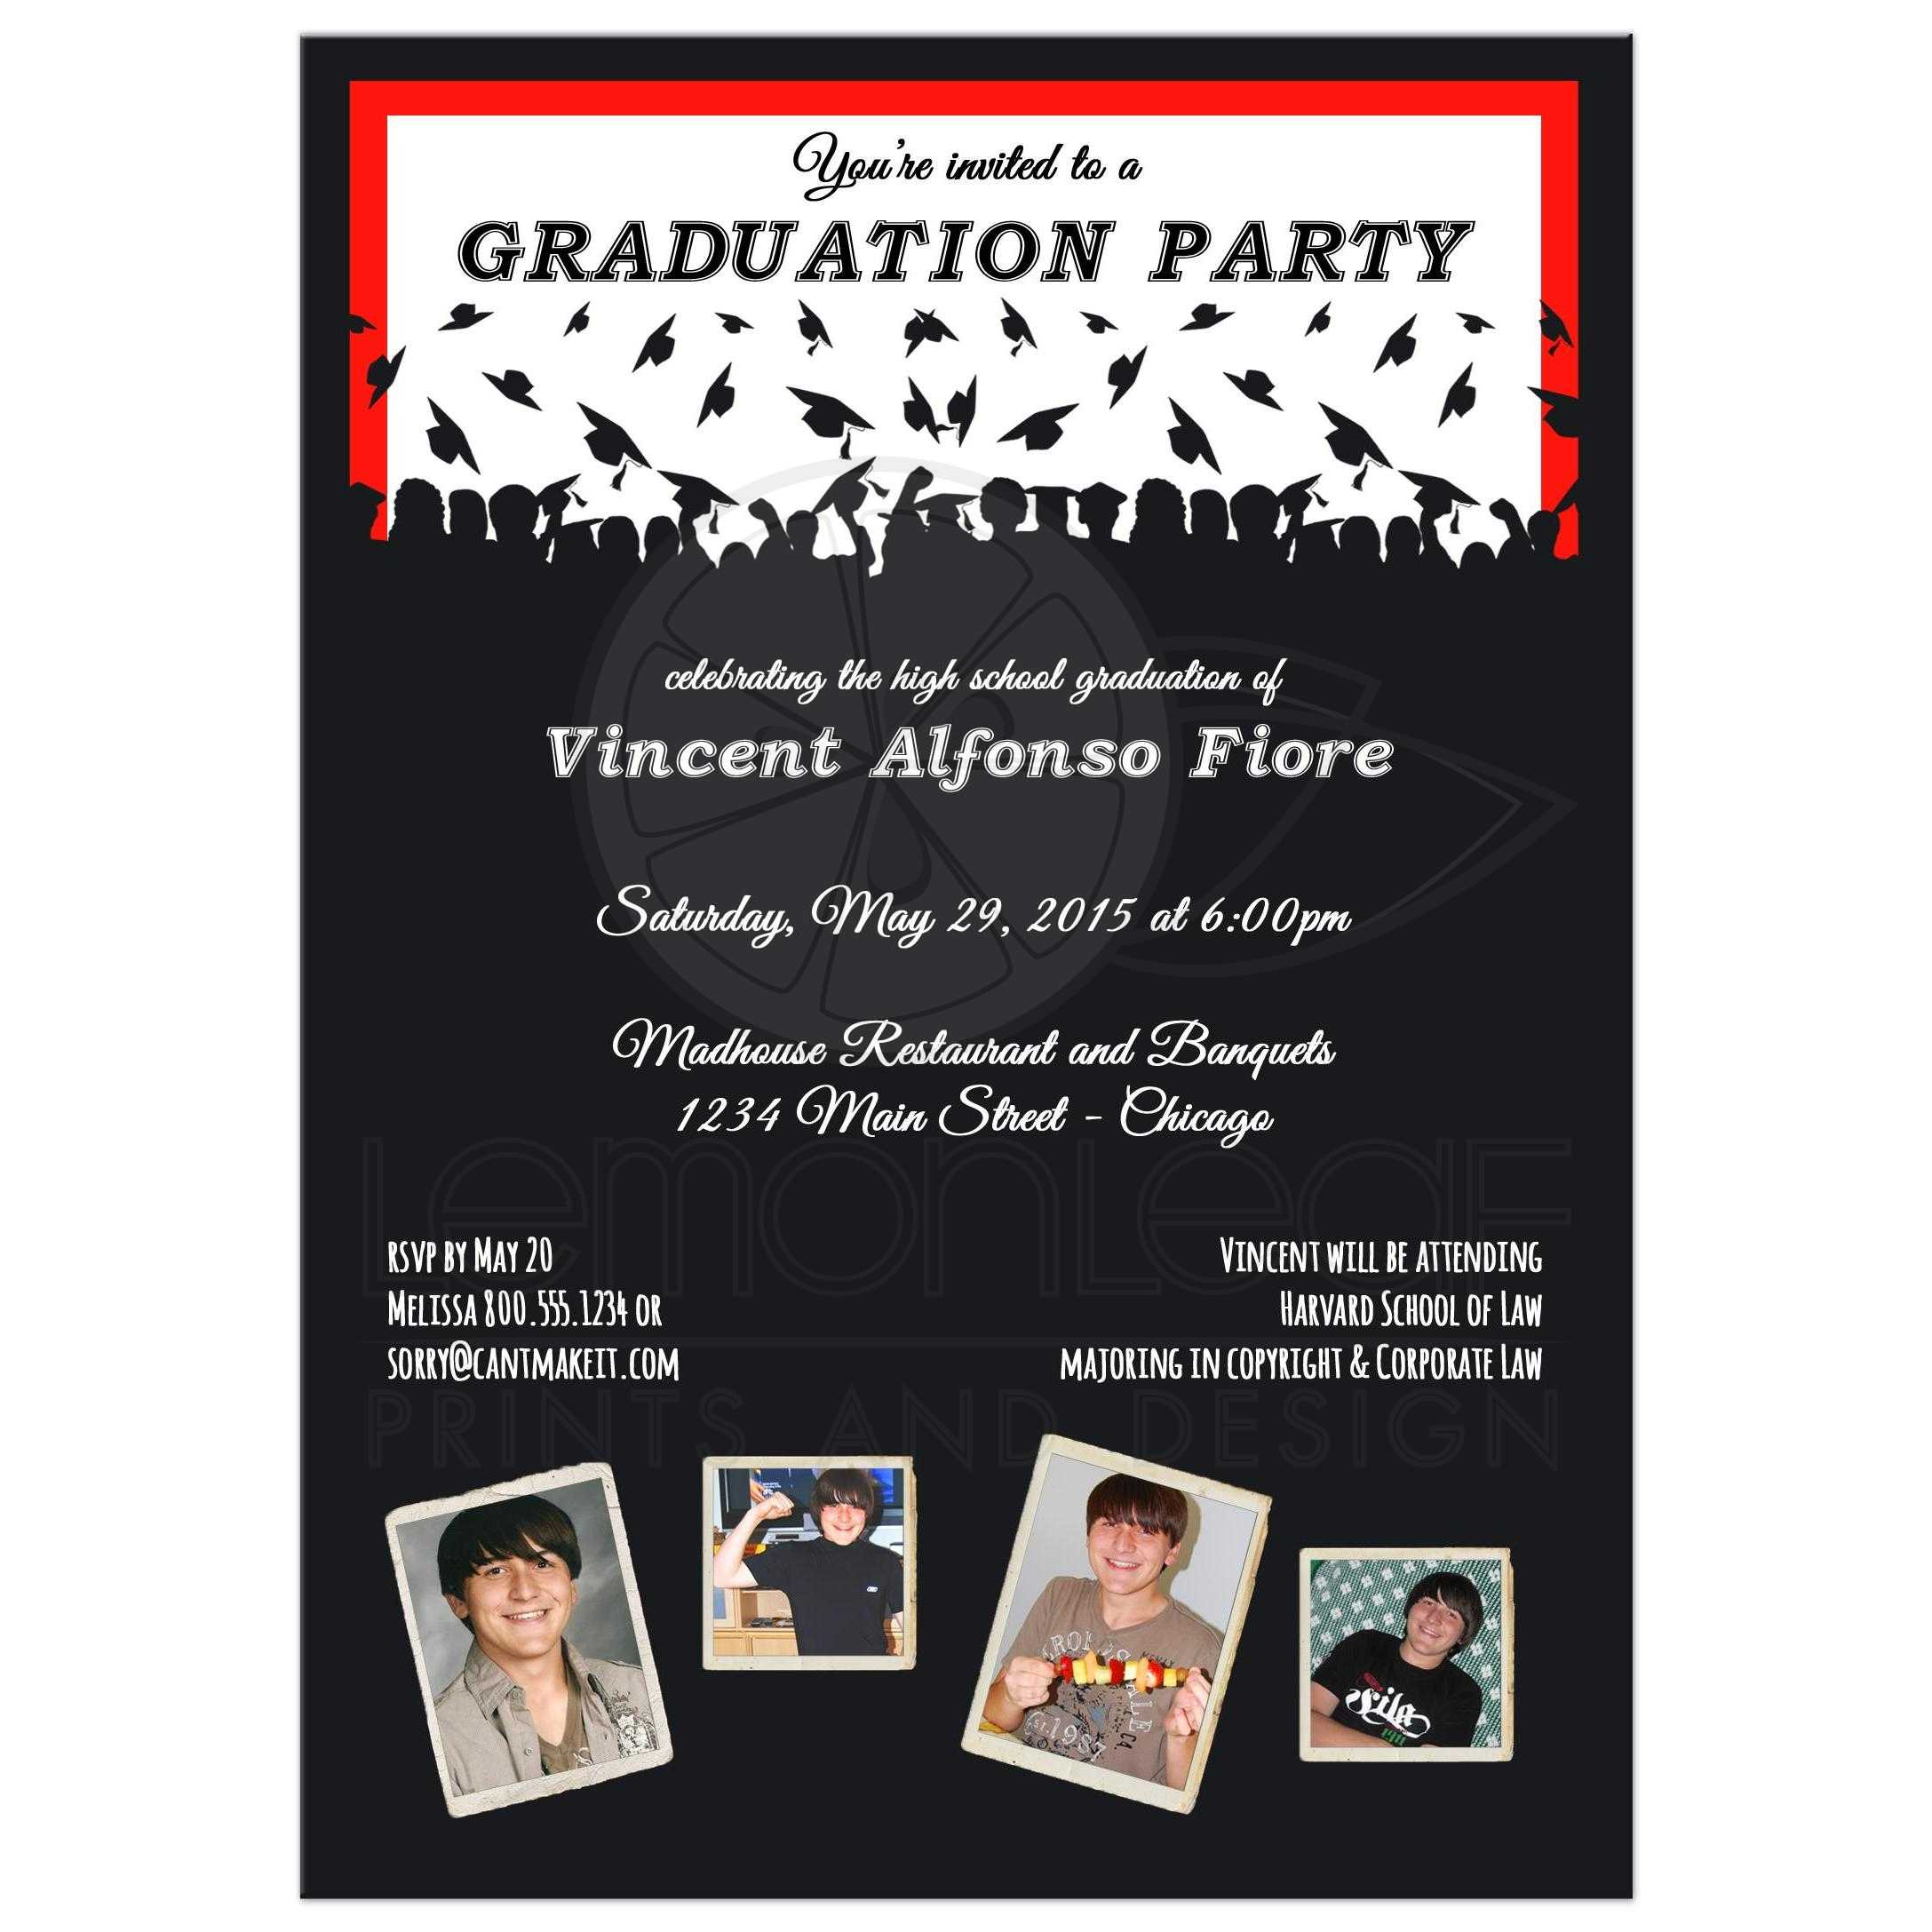 Cute Black And Red Silhouette Graduation Party Photo Invitation